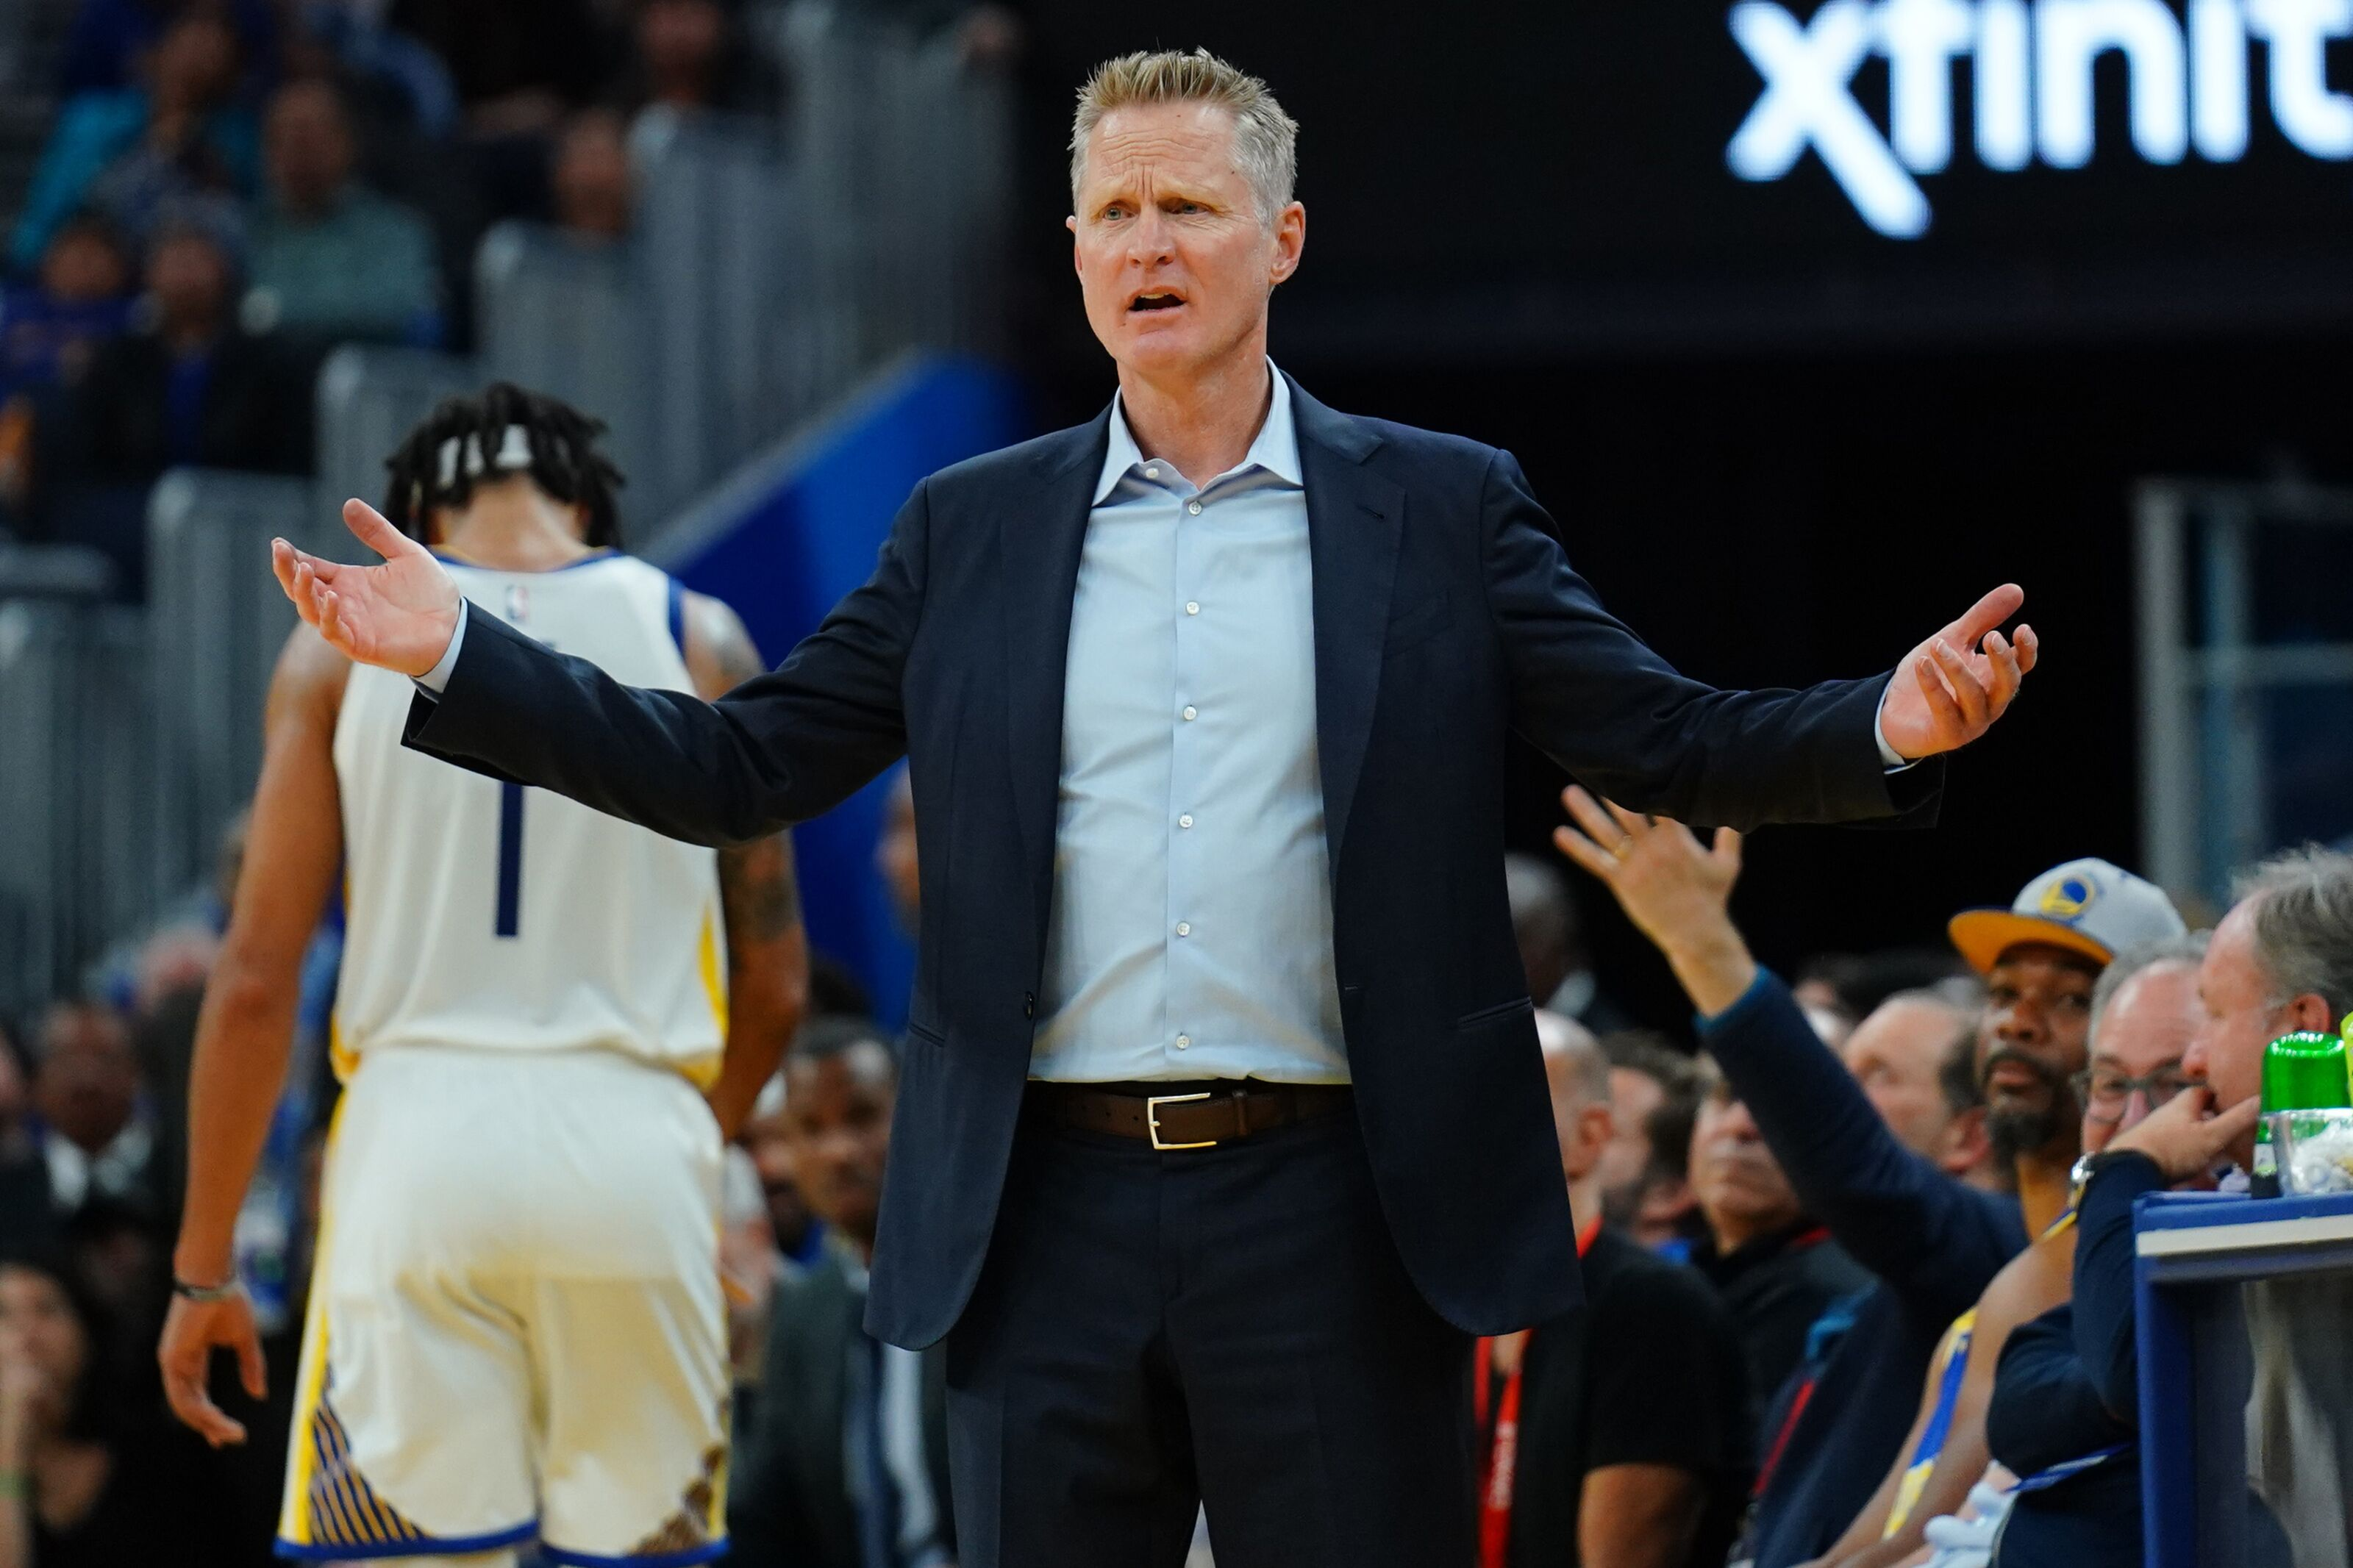 Golden State Warriors: Steve Kerr is having his talents tested